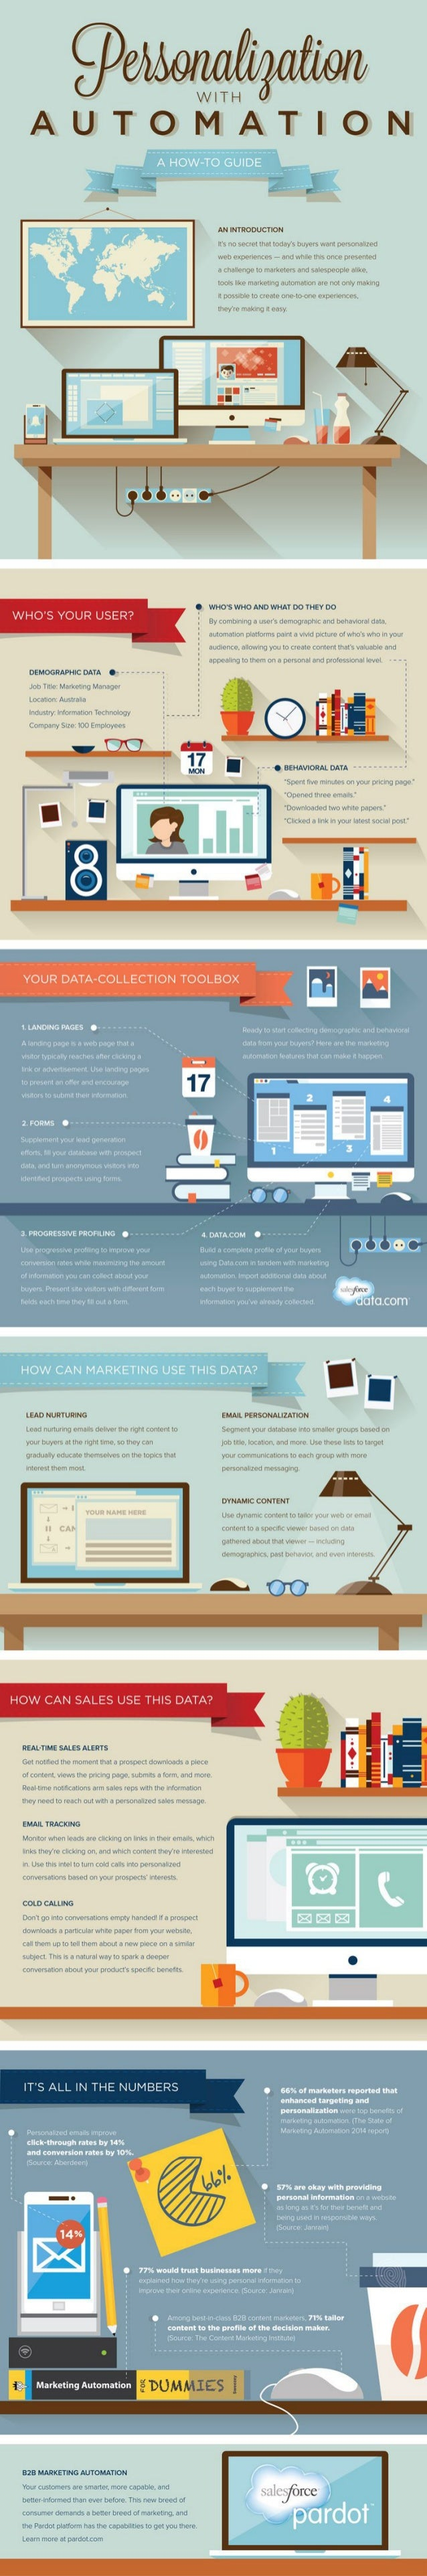 Personalization with Automation: A How-To Guide [Infographic]